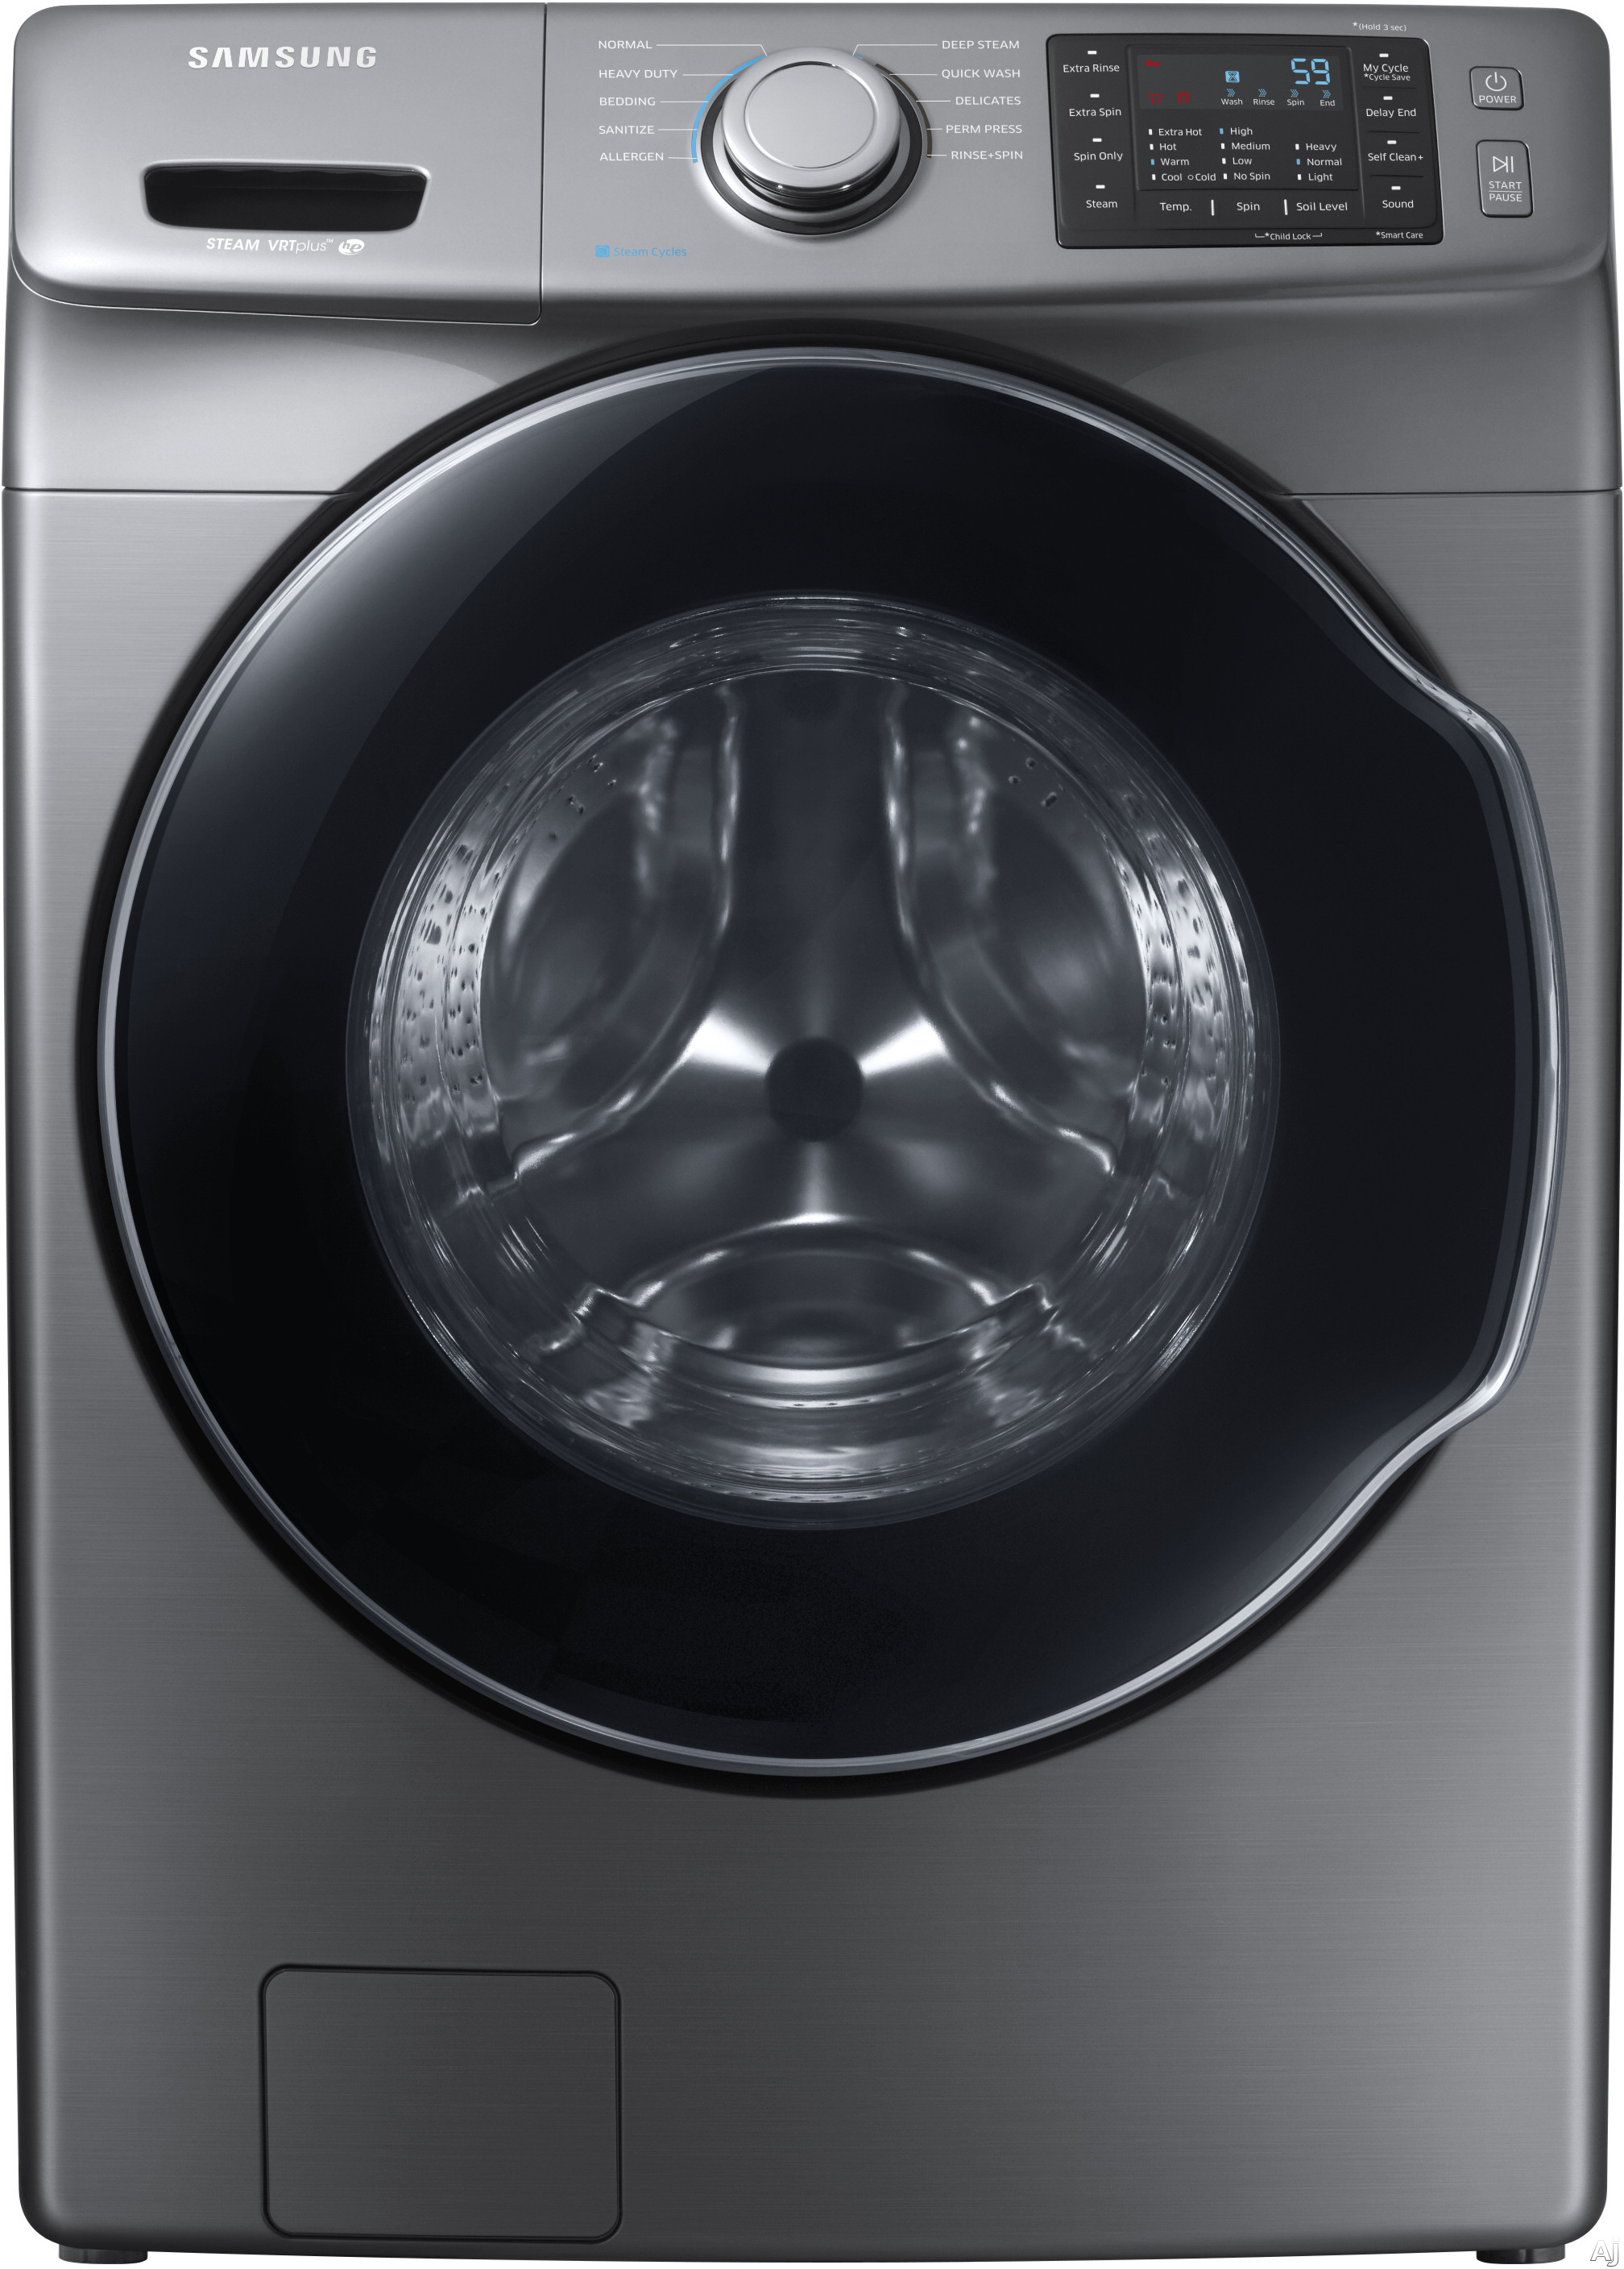 Samsung WF45M5500AP 27 Inch Front Load Washer with Steam, Self Clean+ Cycle, Smart Care, 10 Wash Cycles, Quick Wash, Allergen Cycle, 3-Tray Dispenser, Internal Water Heater, VRT Plus™ Technology, ENERGY STAR® and 4.5 cu. ft. Capacity: Platinum WF45M55